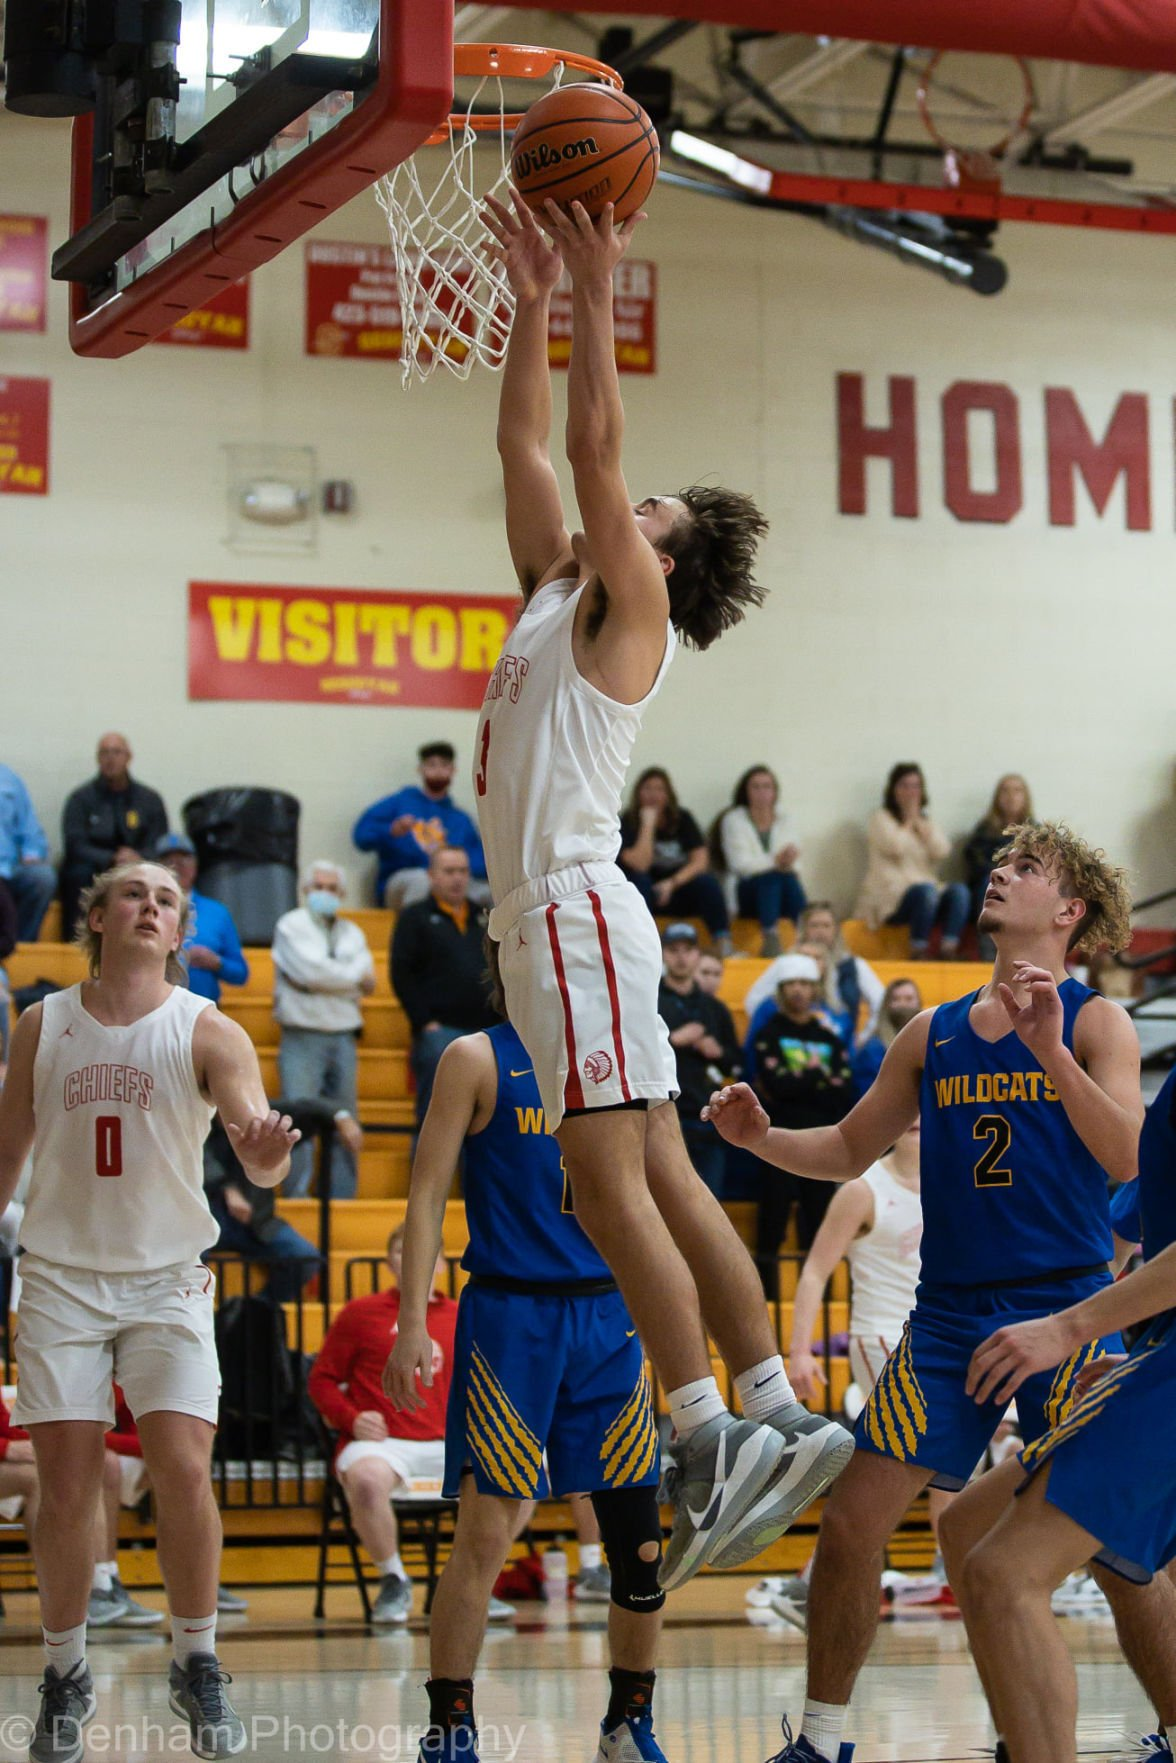 Strickland lifts Sequoyah past Sweetwater in double overtime